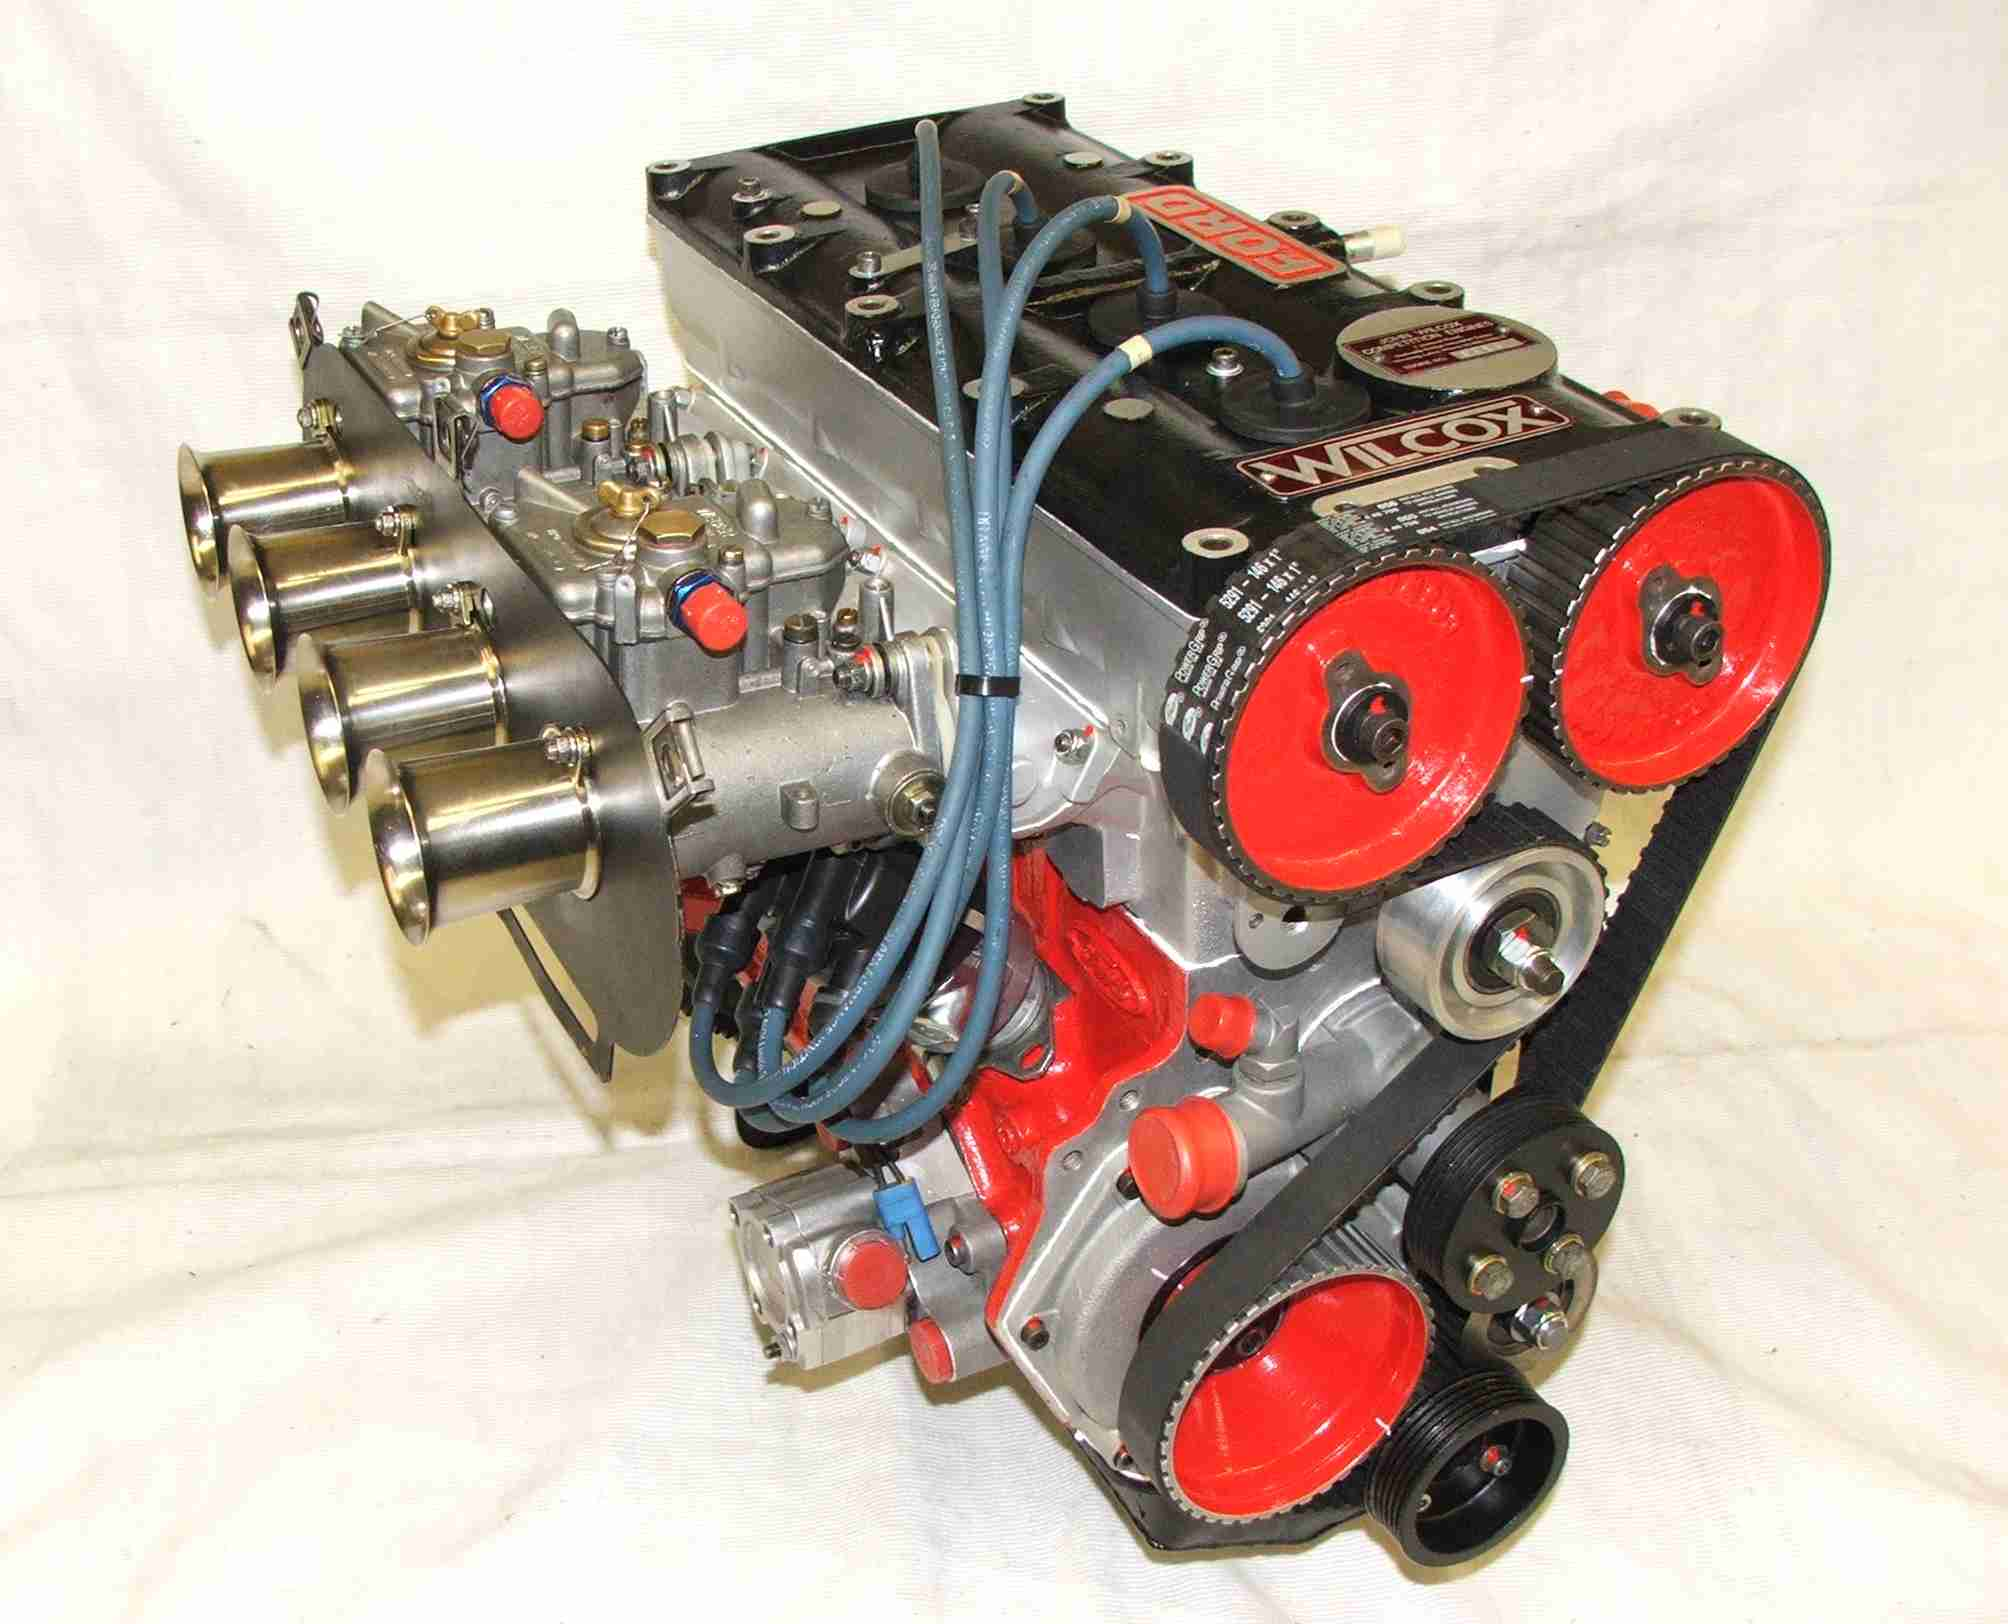 2 2 liter cosworth bdg mechanical beauty pinterest engine race engines and car engine